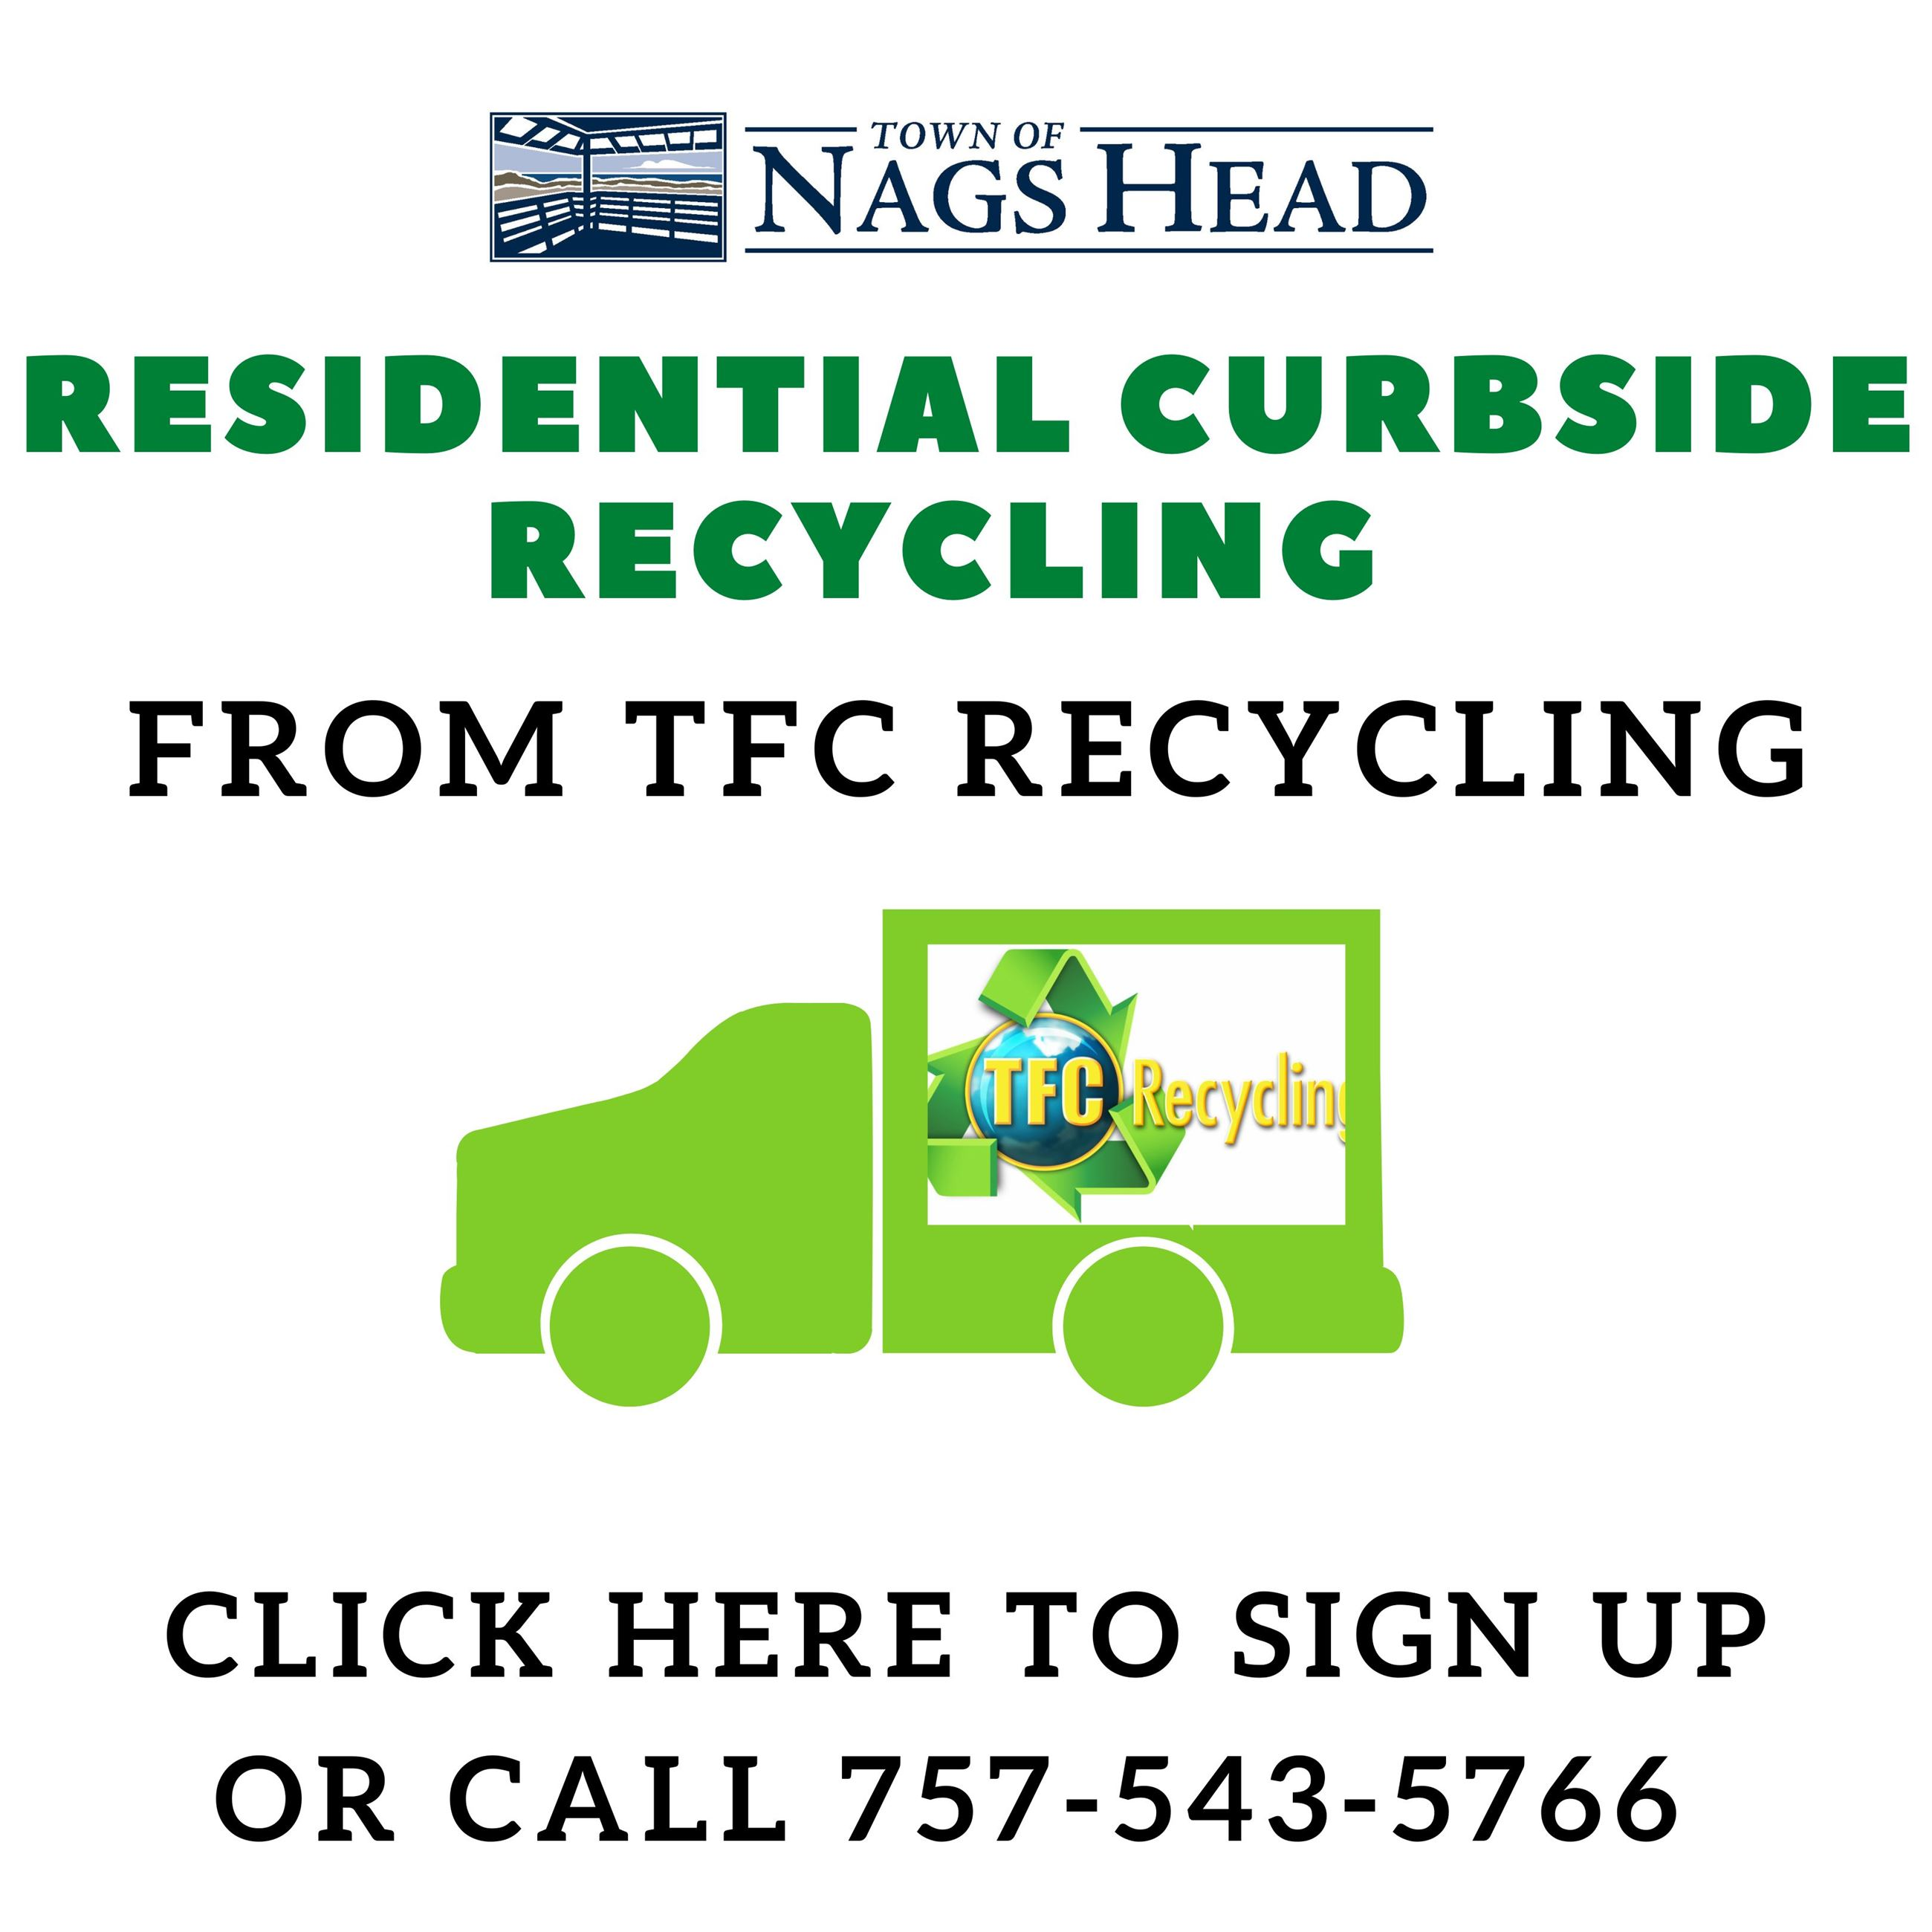 Sign up with TFC for Curbside Recycling